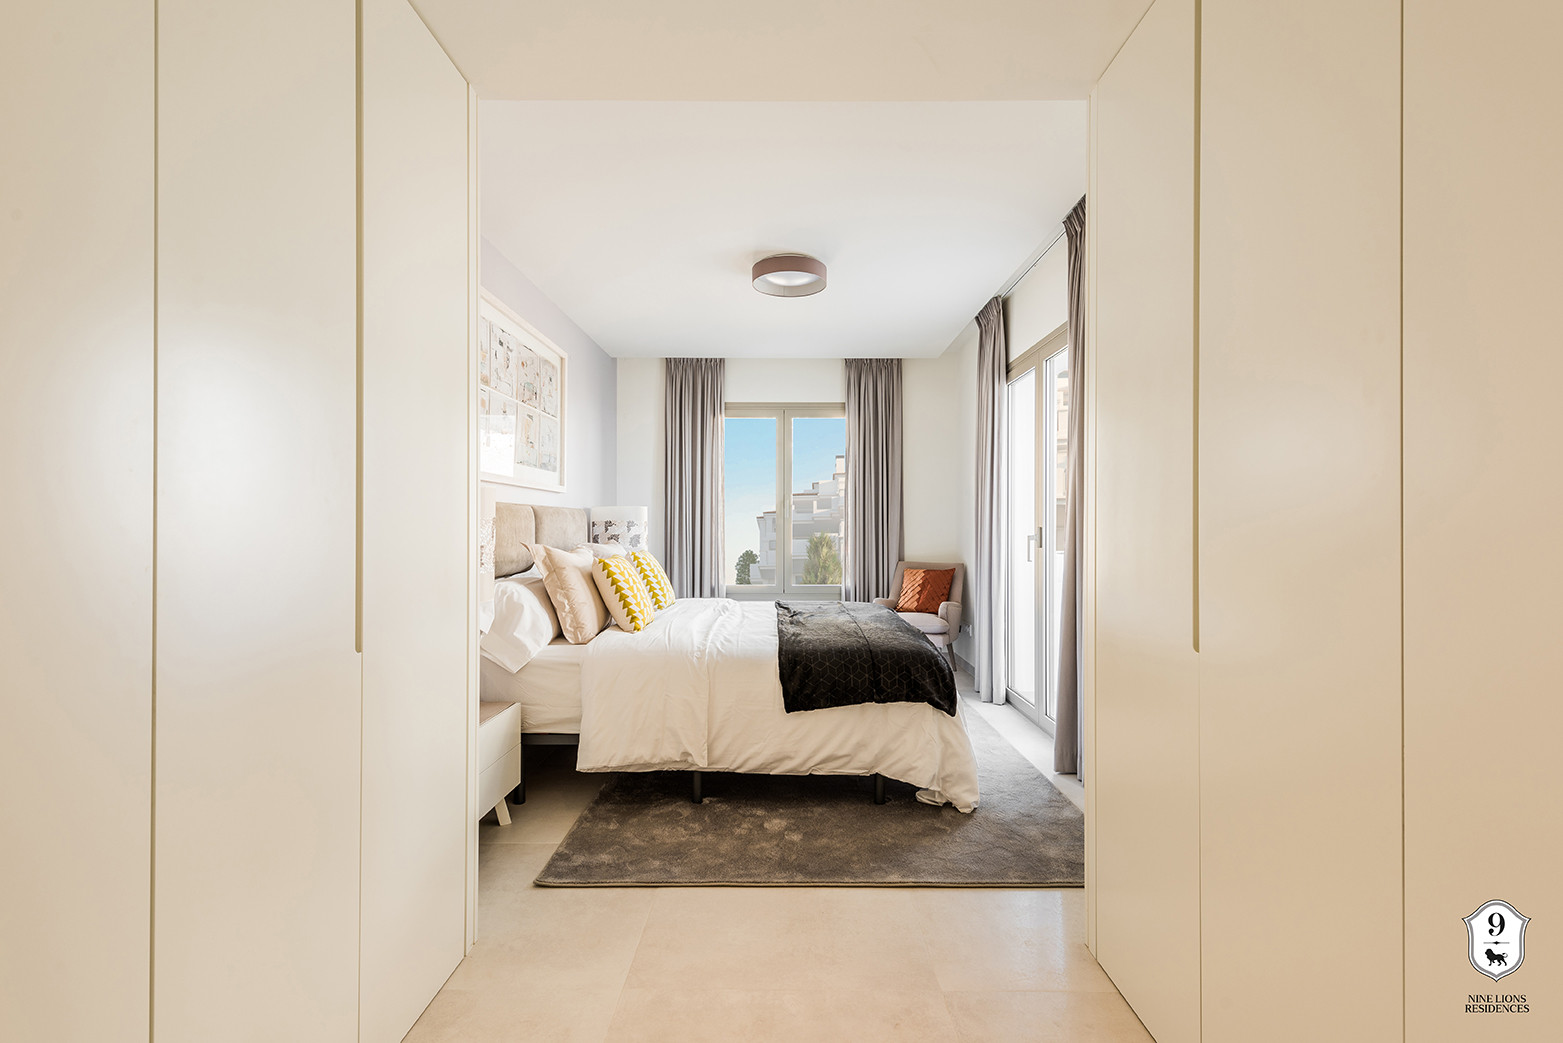 9 Lions Residences – 339-00112G